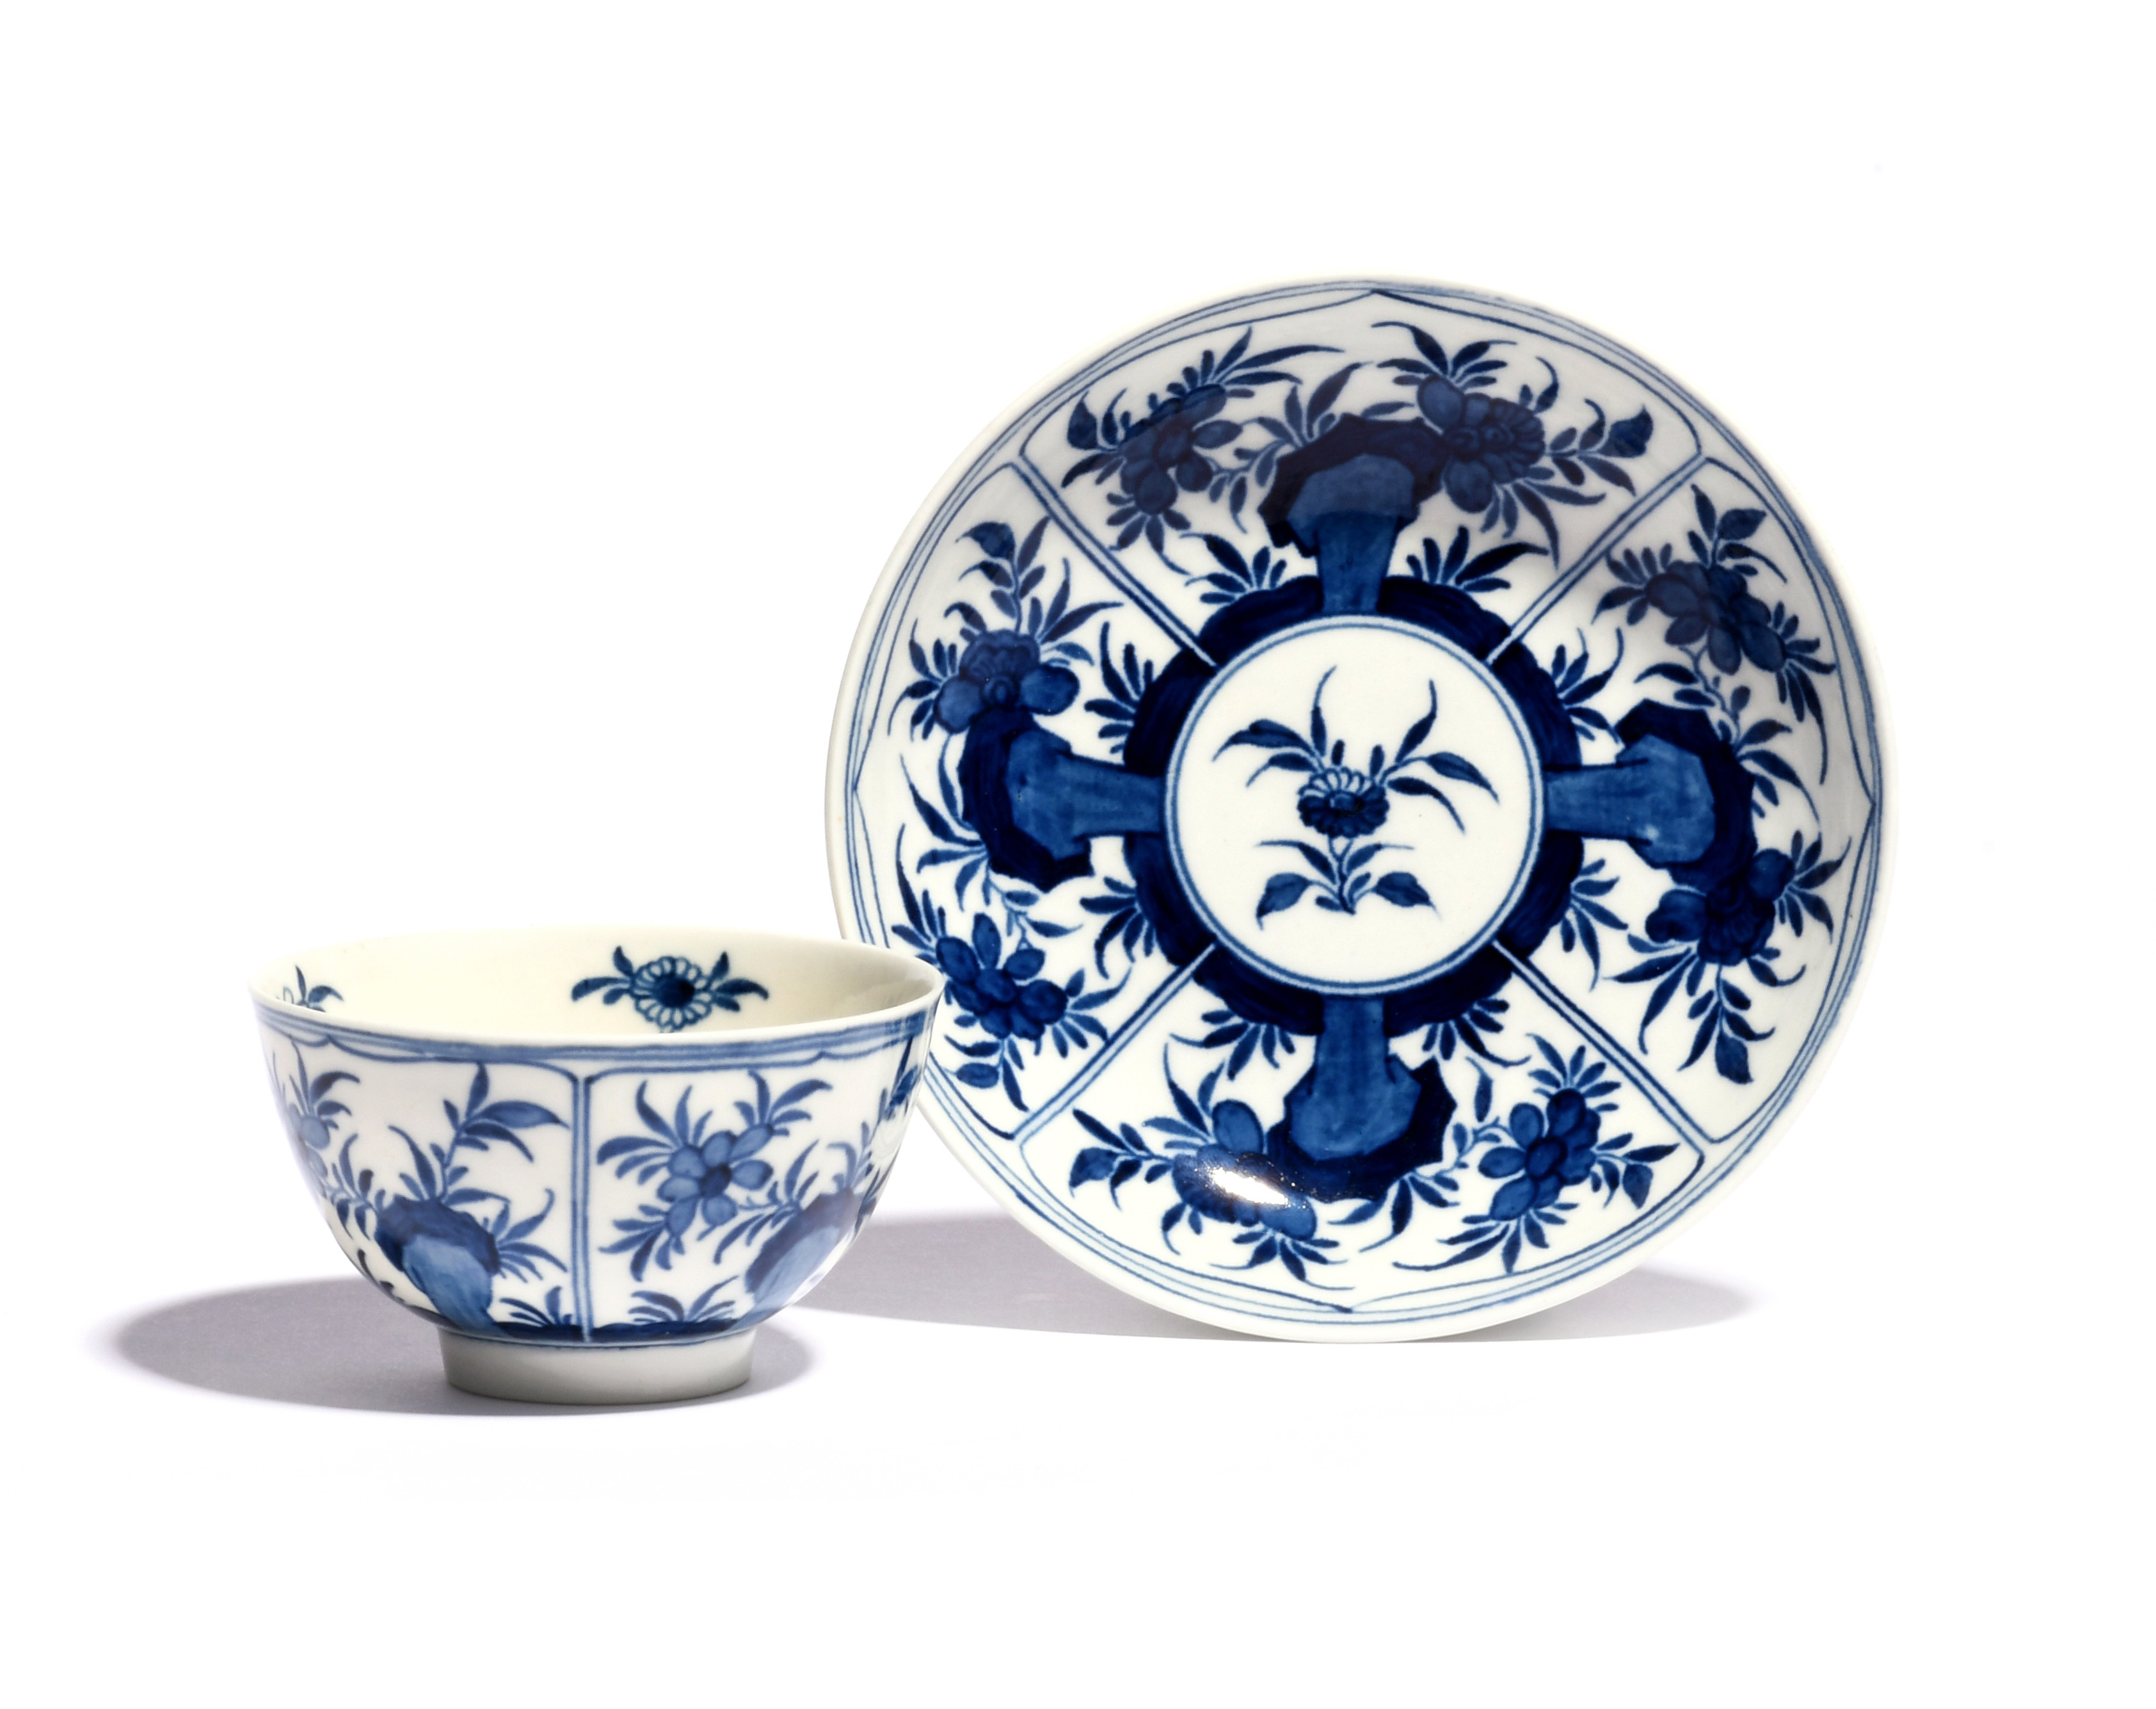 A Worcester blue and white teabowl and saucer c.1770-72, painted with the Floral Arcade pattern,